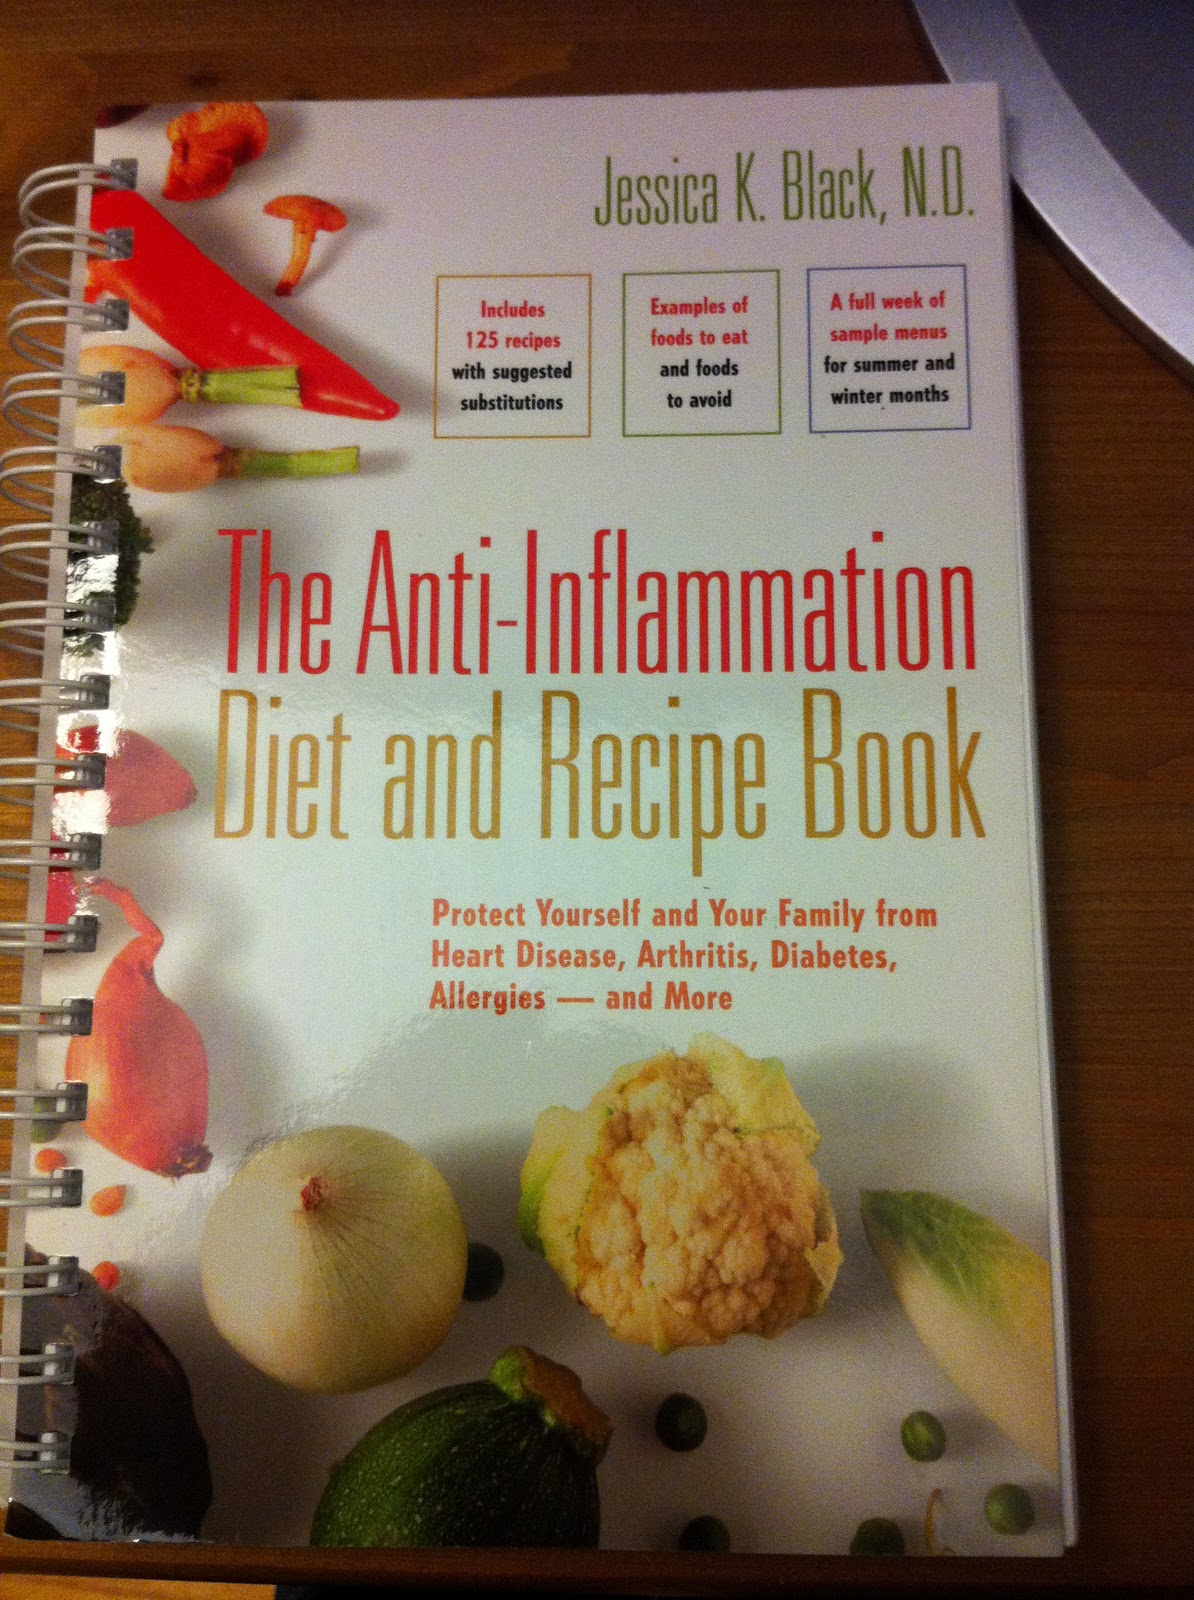 The happy rehab doc using food to heal pain part 2 what did i do using food to heal pain part 2 what did i do also effects on arthritis acute muscle strains fibromyalgia chronic pain chronic fatigue heart disease forumfinder Choice Image